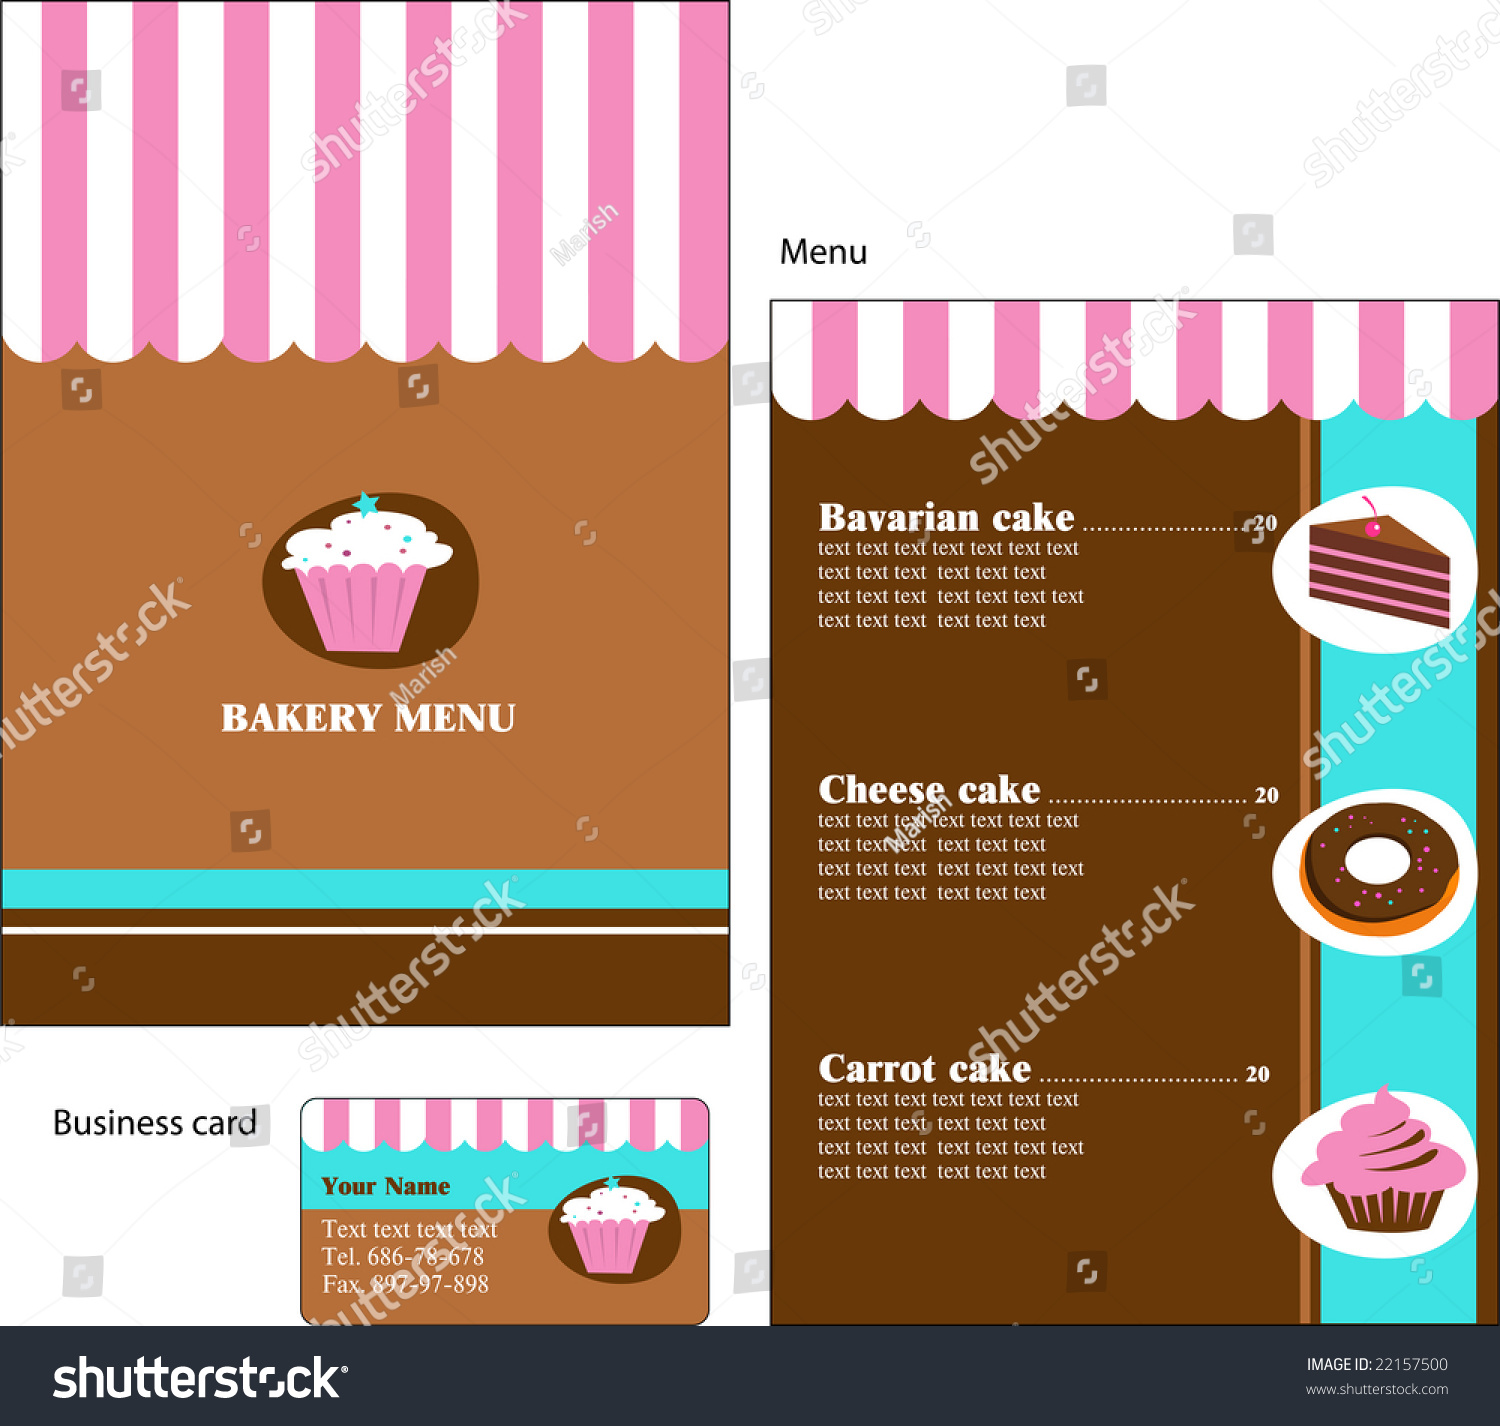 template designs of menu and business card for cafe coffee shop bakery and restaurant stock. Black Bedroom Furniture Sets. Home Design Ideas